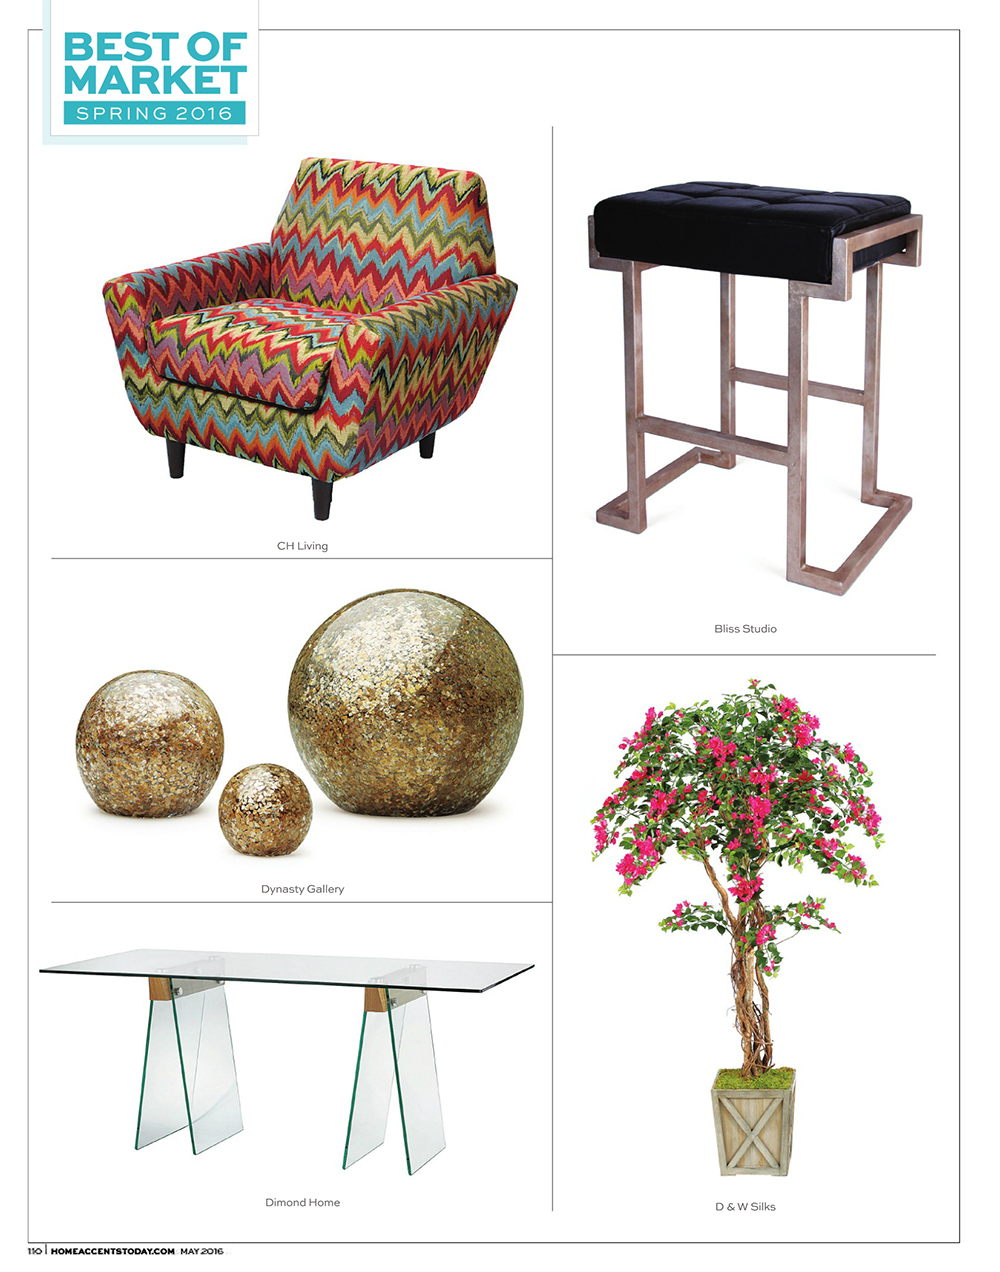 Home Accents Today - Best of Market - Spring 2016